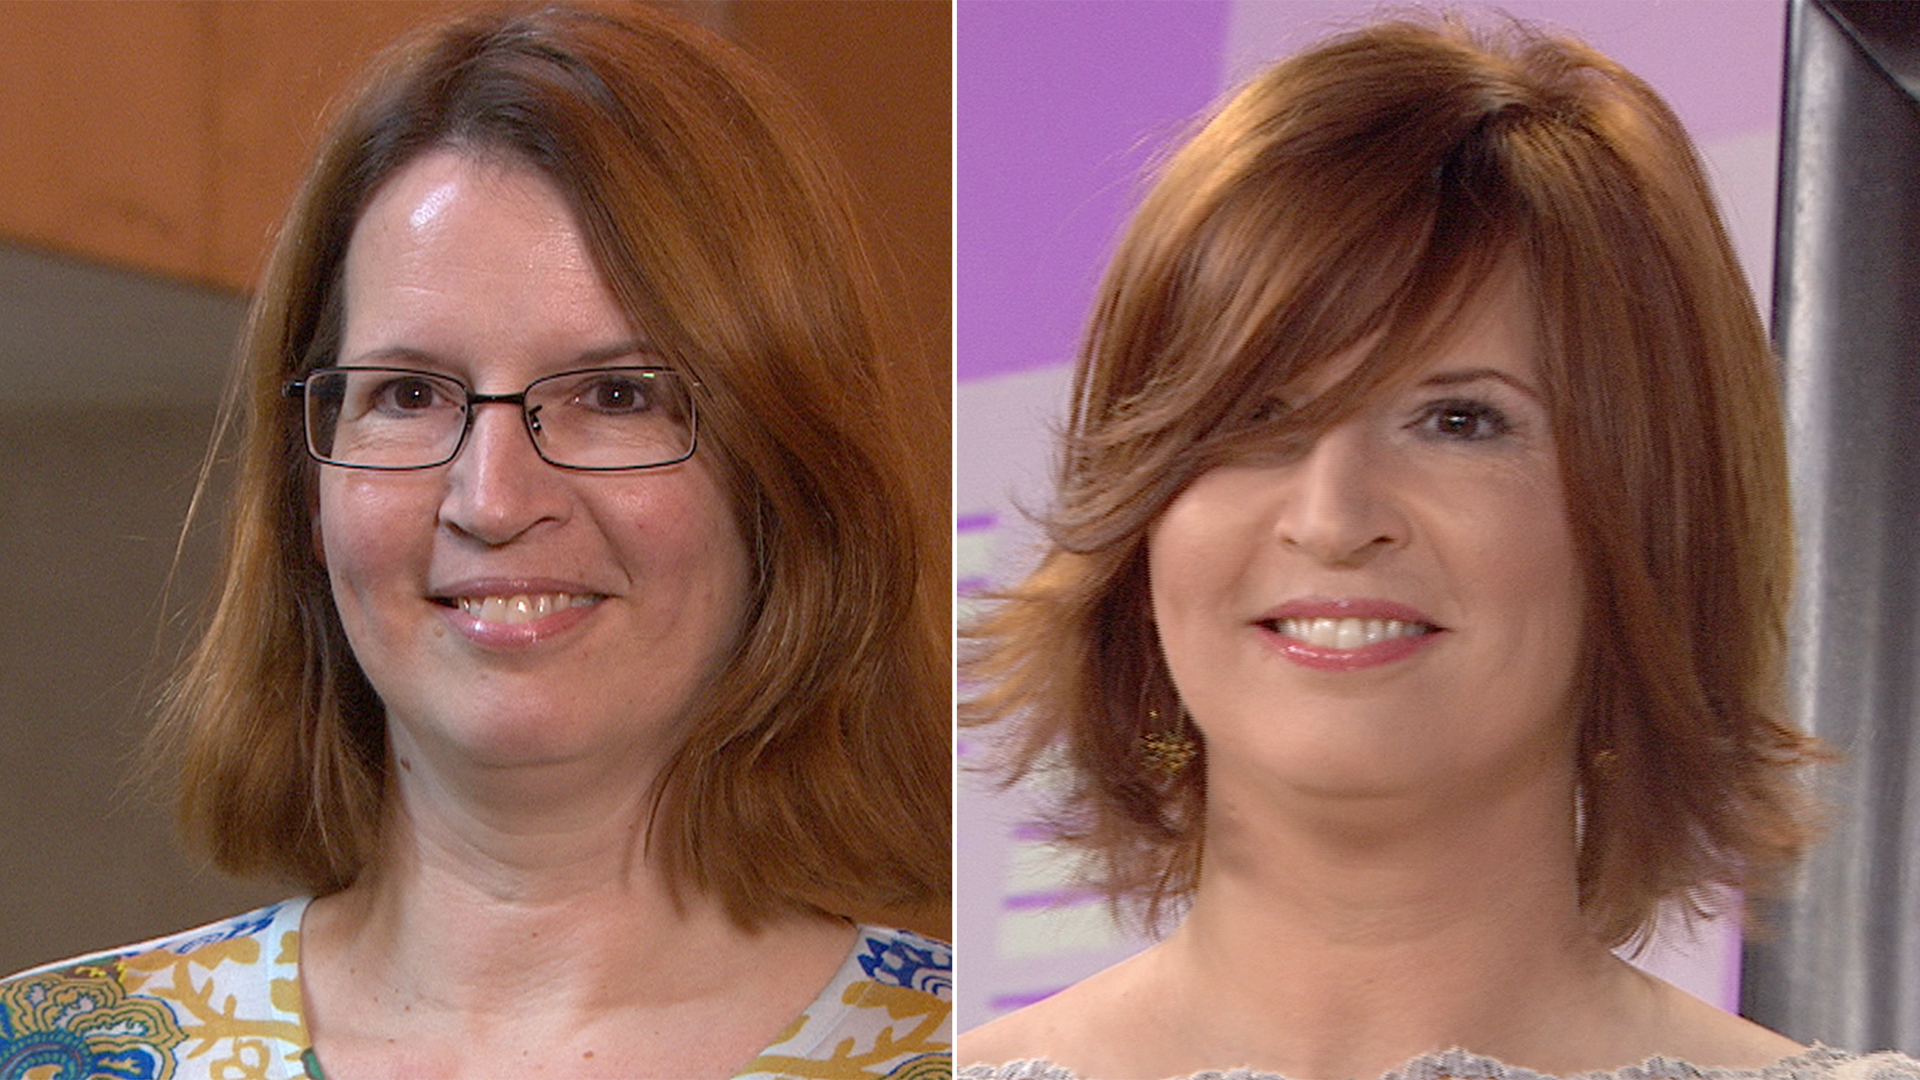 Caveman Makeover On Today Show : Today show ambush makeover hairstyle gallery